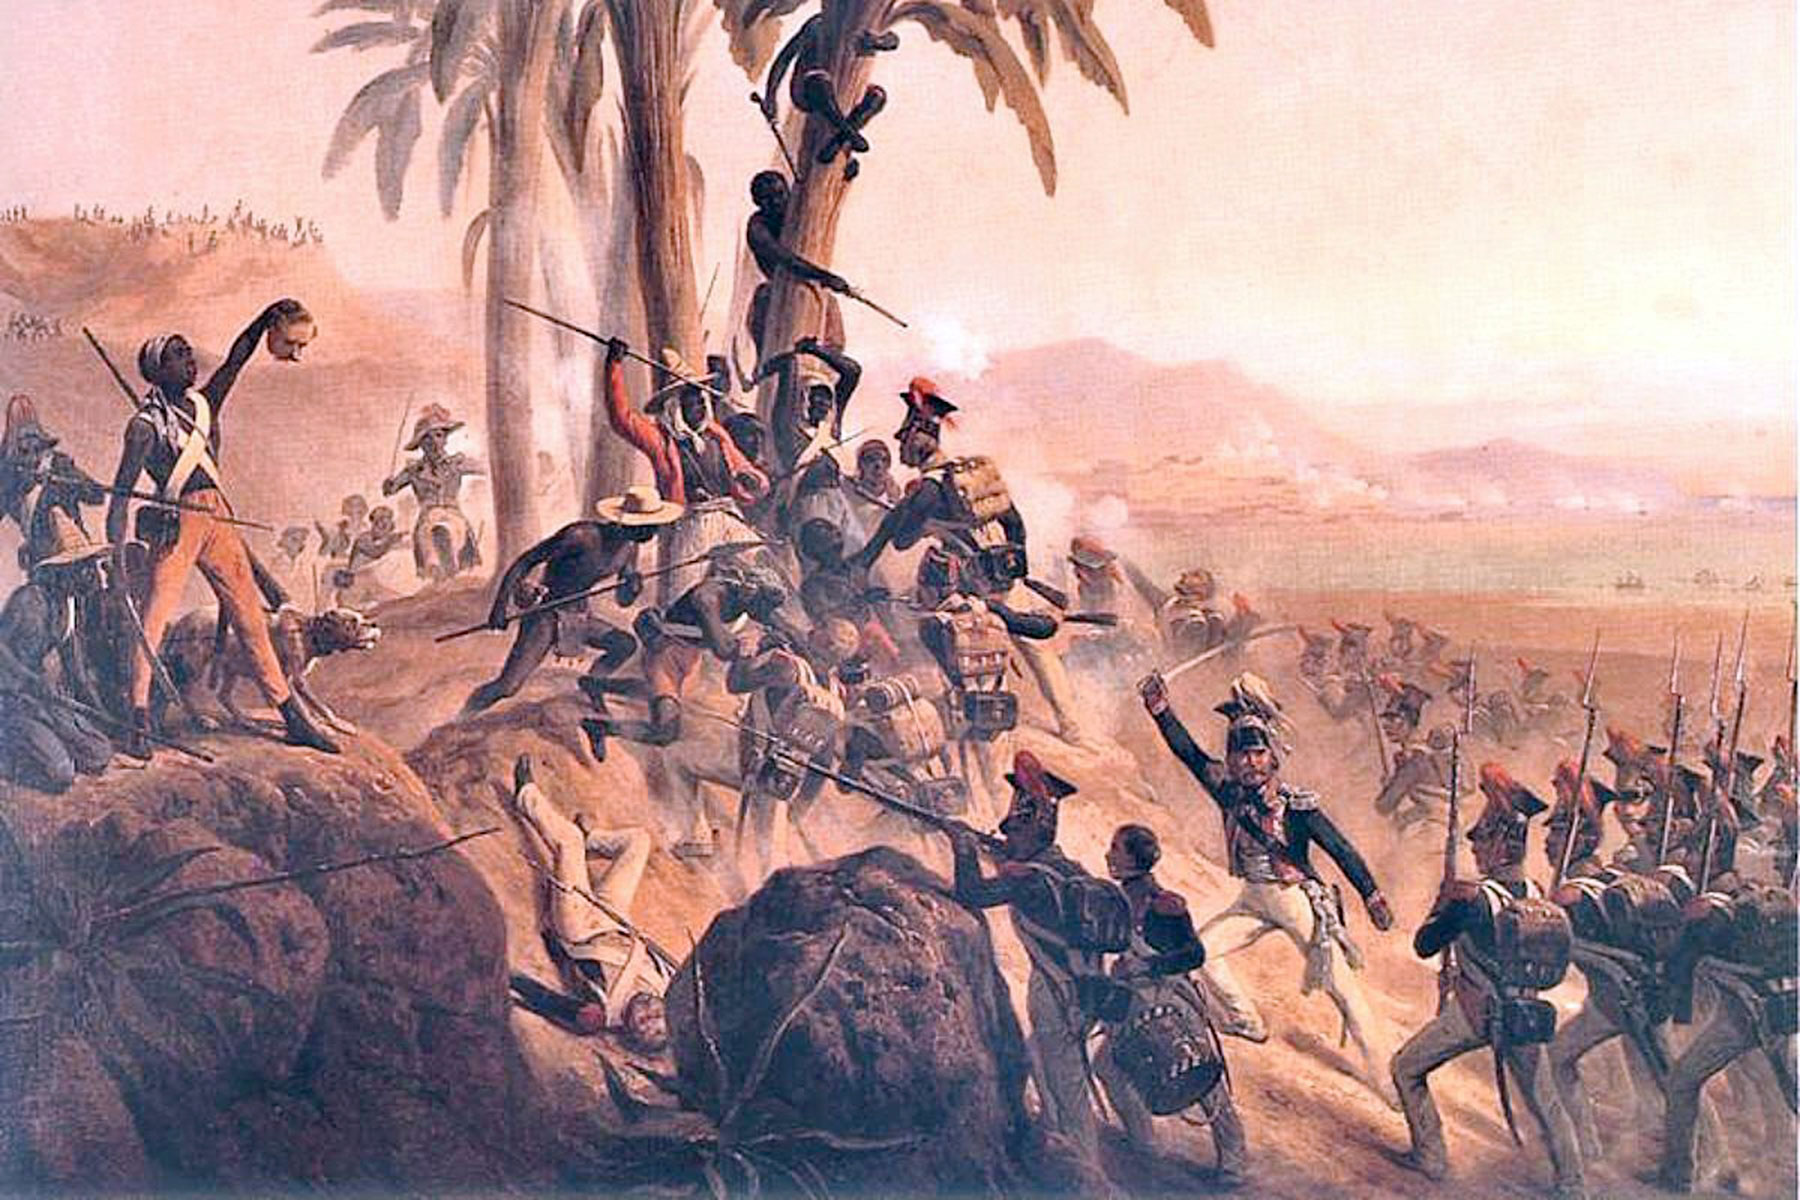 What Is An Essay Thesis The Haitian Revolution Is A Defining Moment In Black History When The  Small Group Of Haitian Freedom Fighters Defeated Napoleon This Colossal  Victory  Narrative Essay Thesis Statement Examples also Harvard Business School Essay Haiti Became An Independent Nation When Enslaved Blacks Defeated  Informative Synthesis Essay